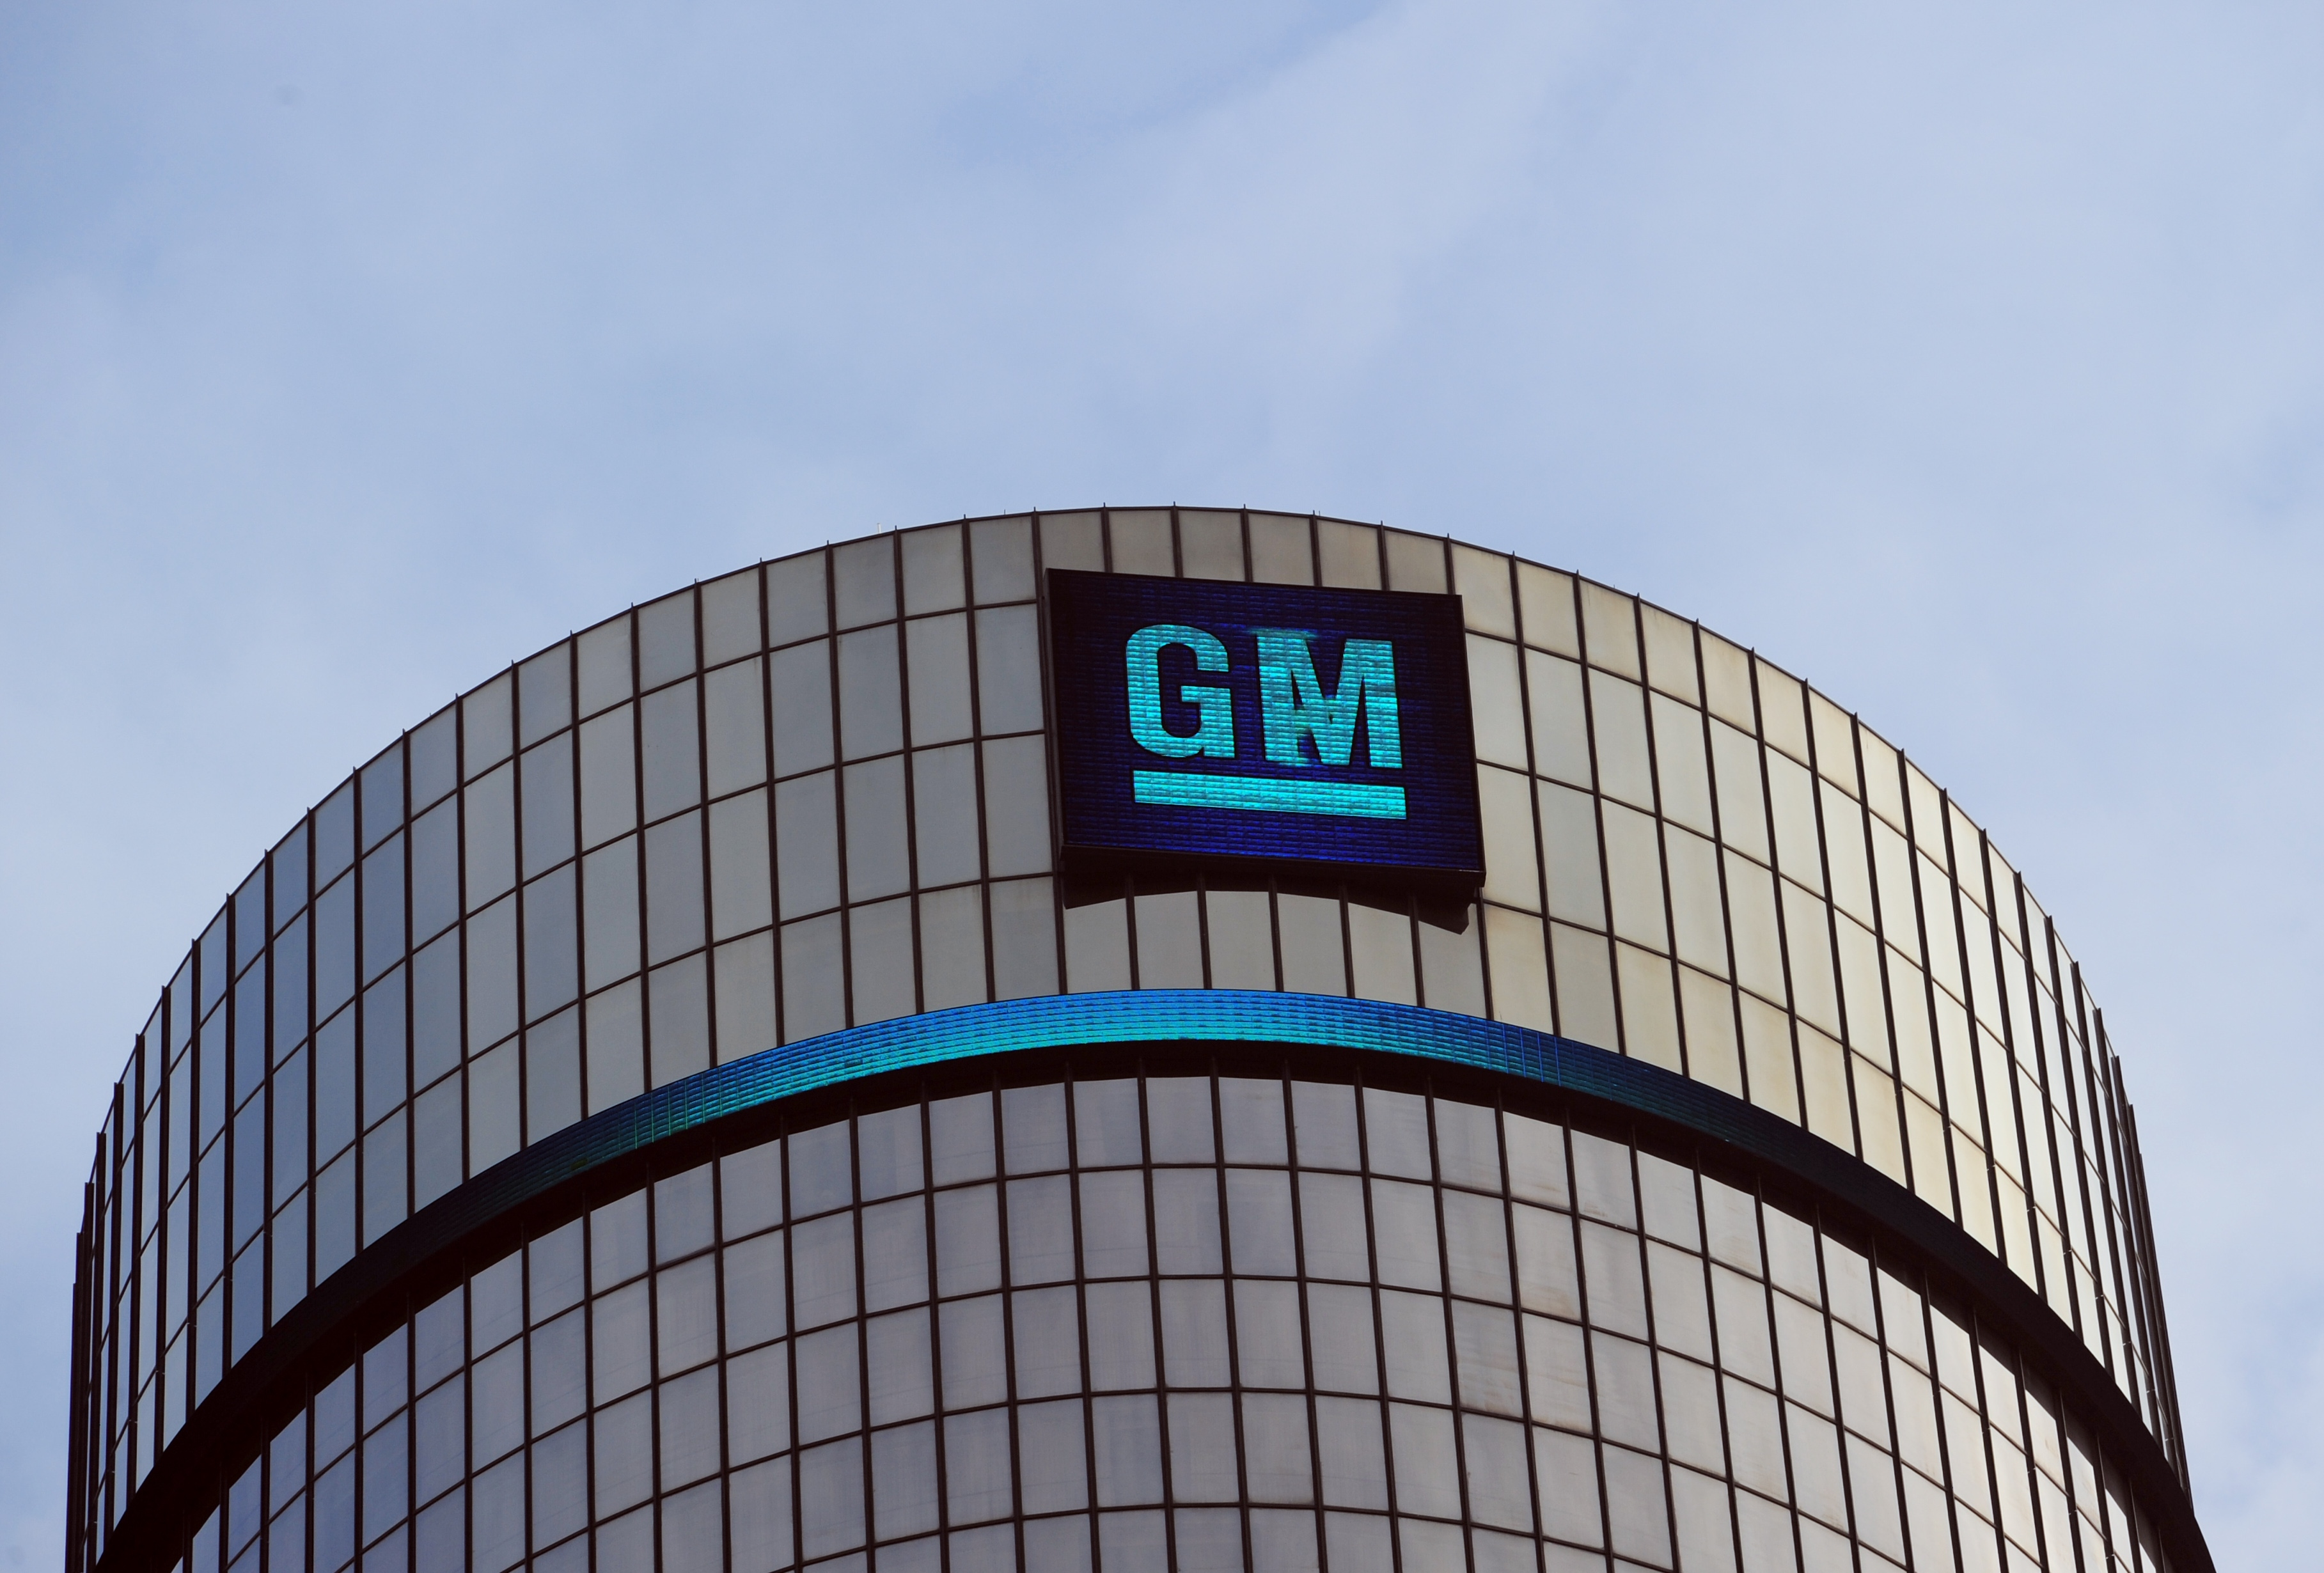 General Motors headquarters in the Renaissance Center on January 14, 2014 in Detroit.